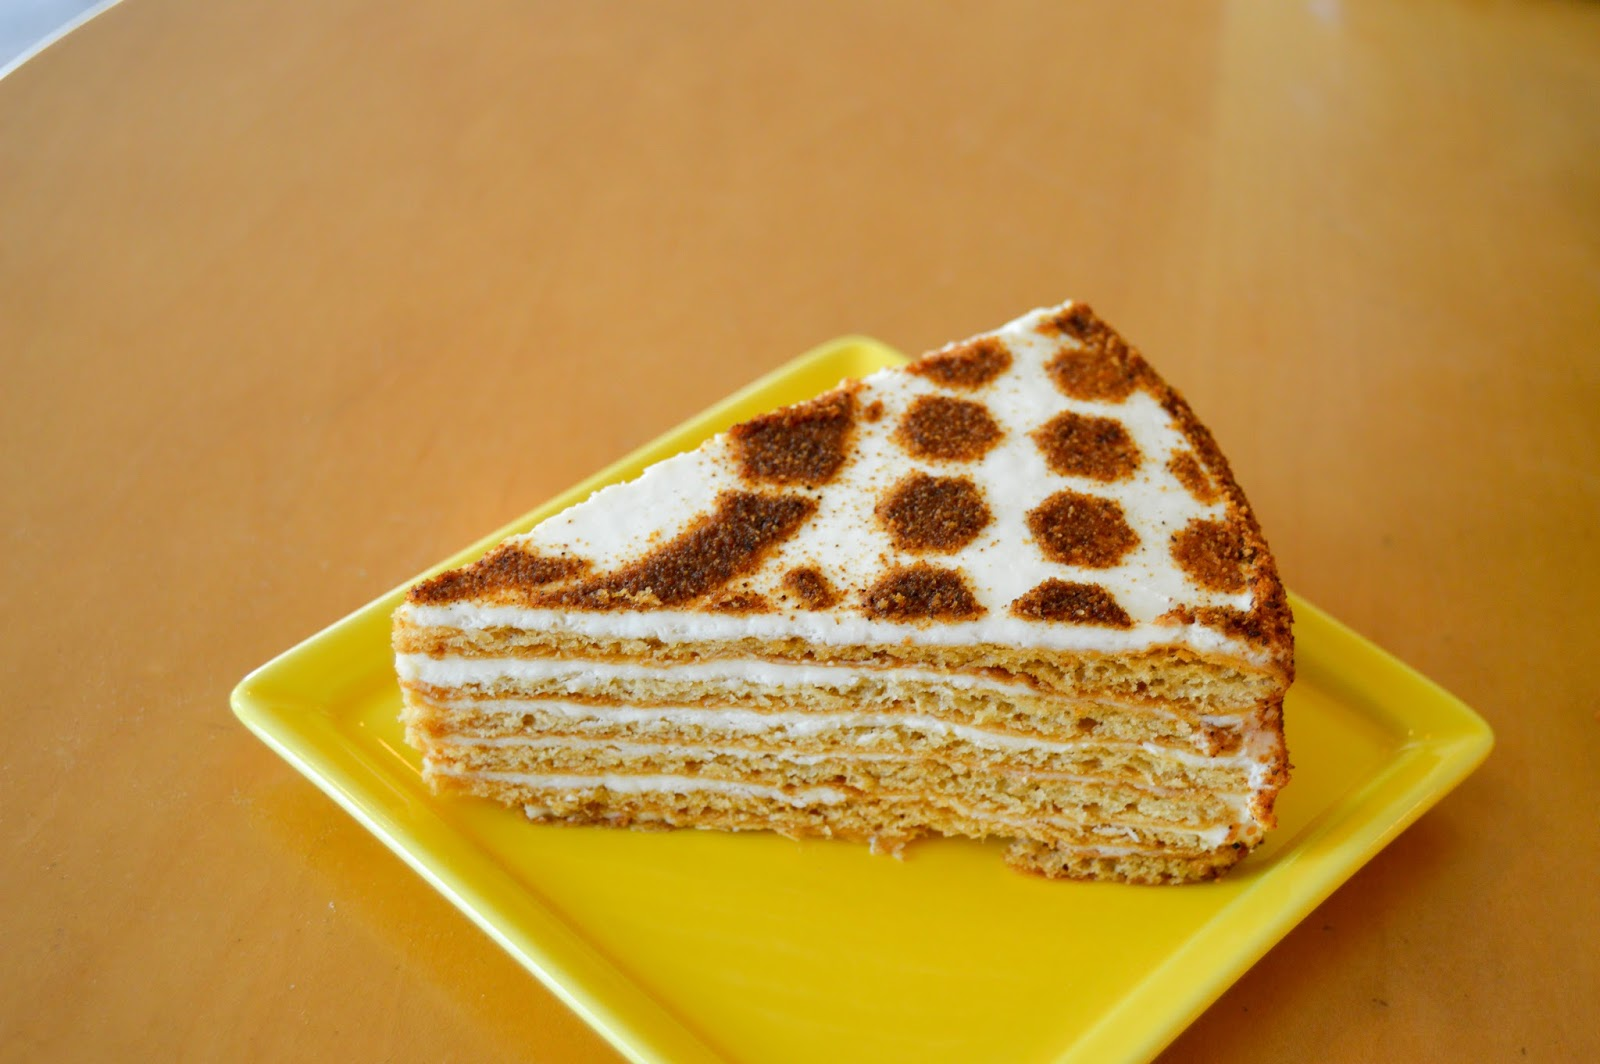 Honey Cake Free Stock Photos & Wallpapers